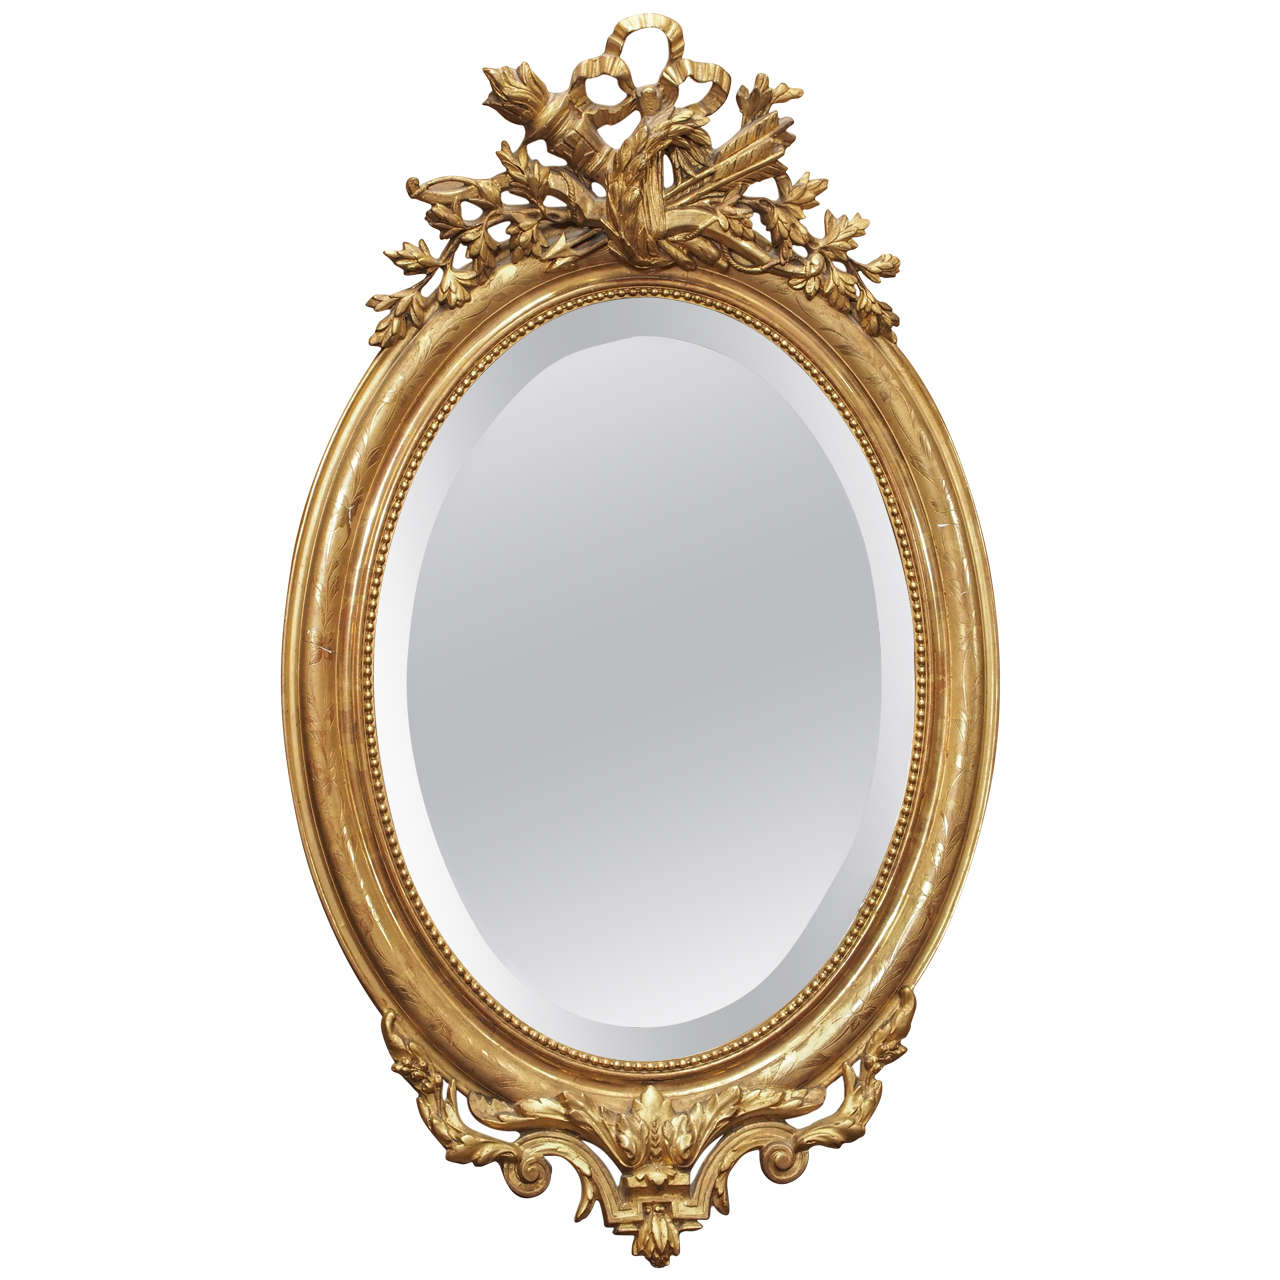 lovely oval antique french gold beveled mirror circa 1850